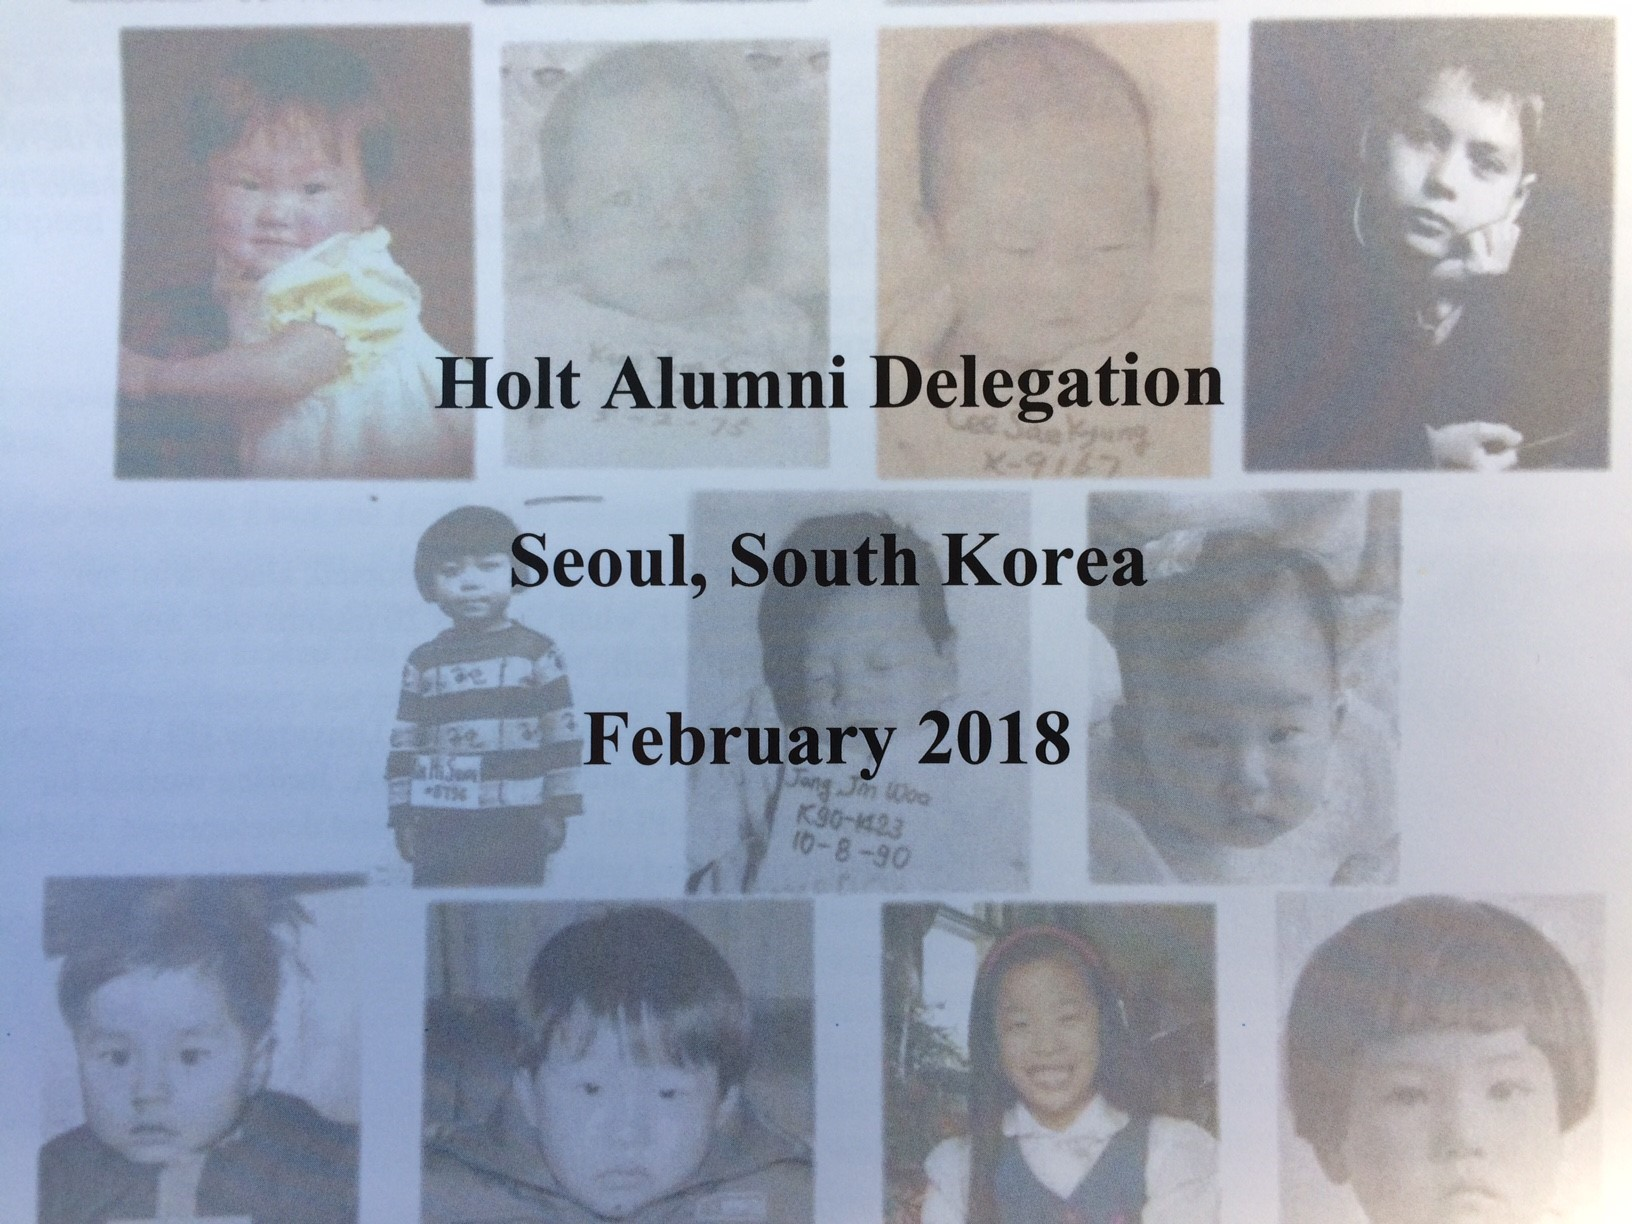 Of particular concern to the delegation: a 2014 change to Korean law affecting both domestic and international adoptions. (SBG)